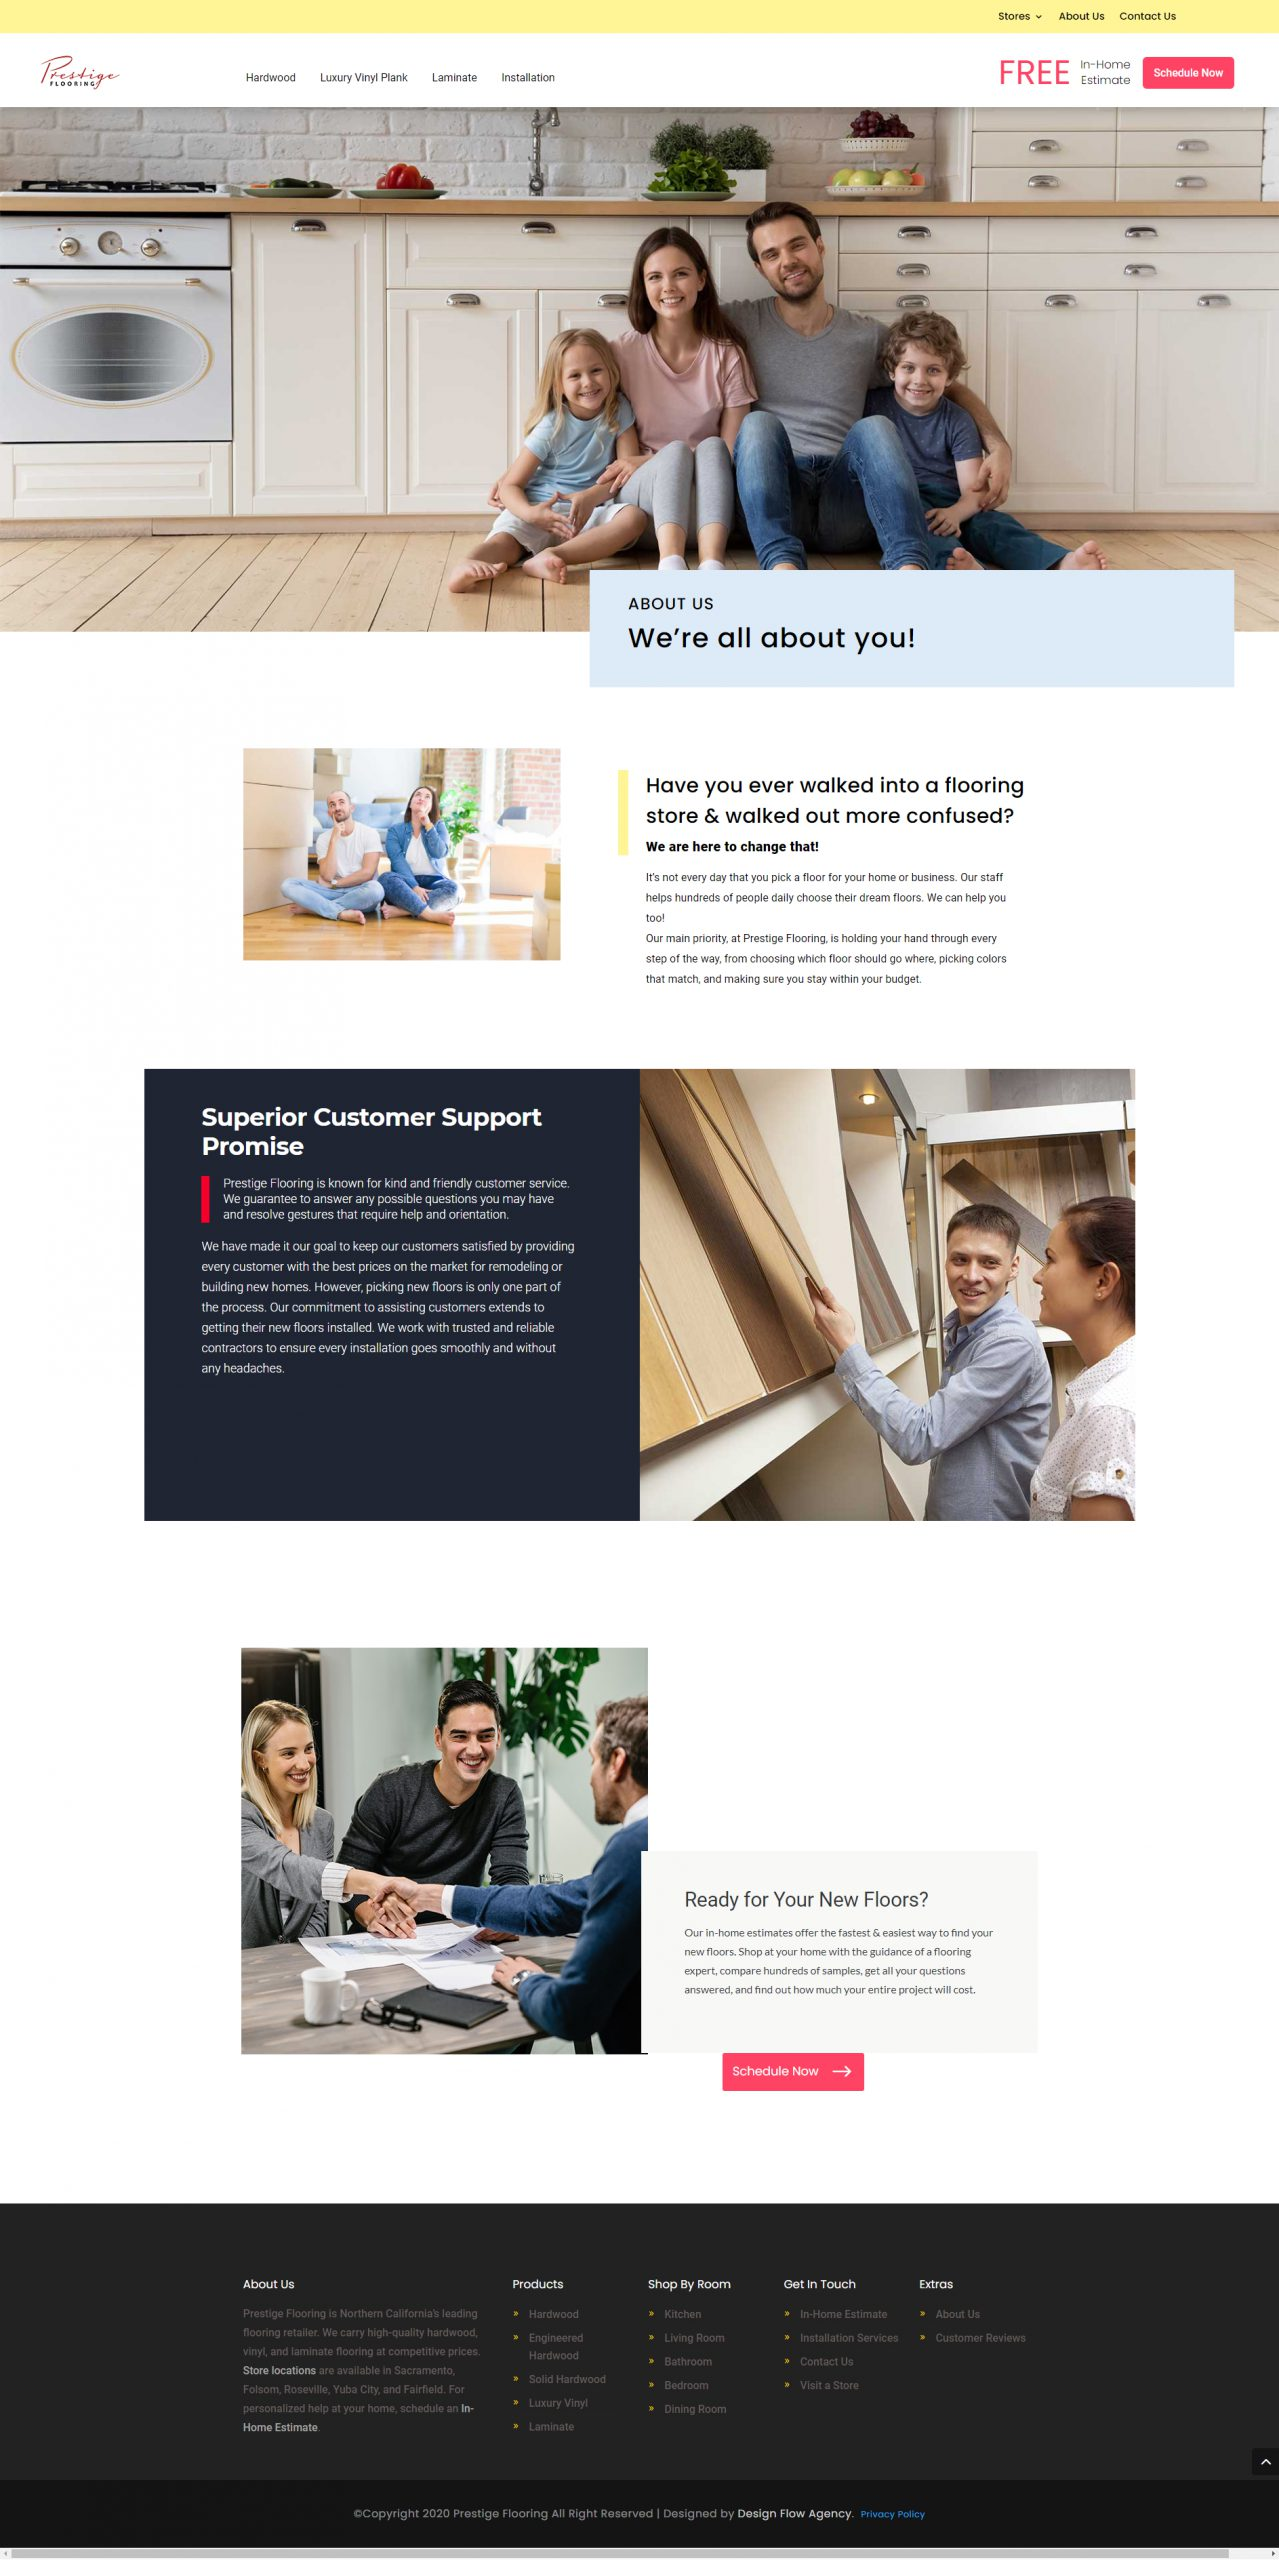 Case study: About us page for a flooring website.